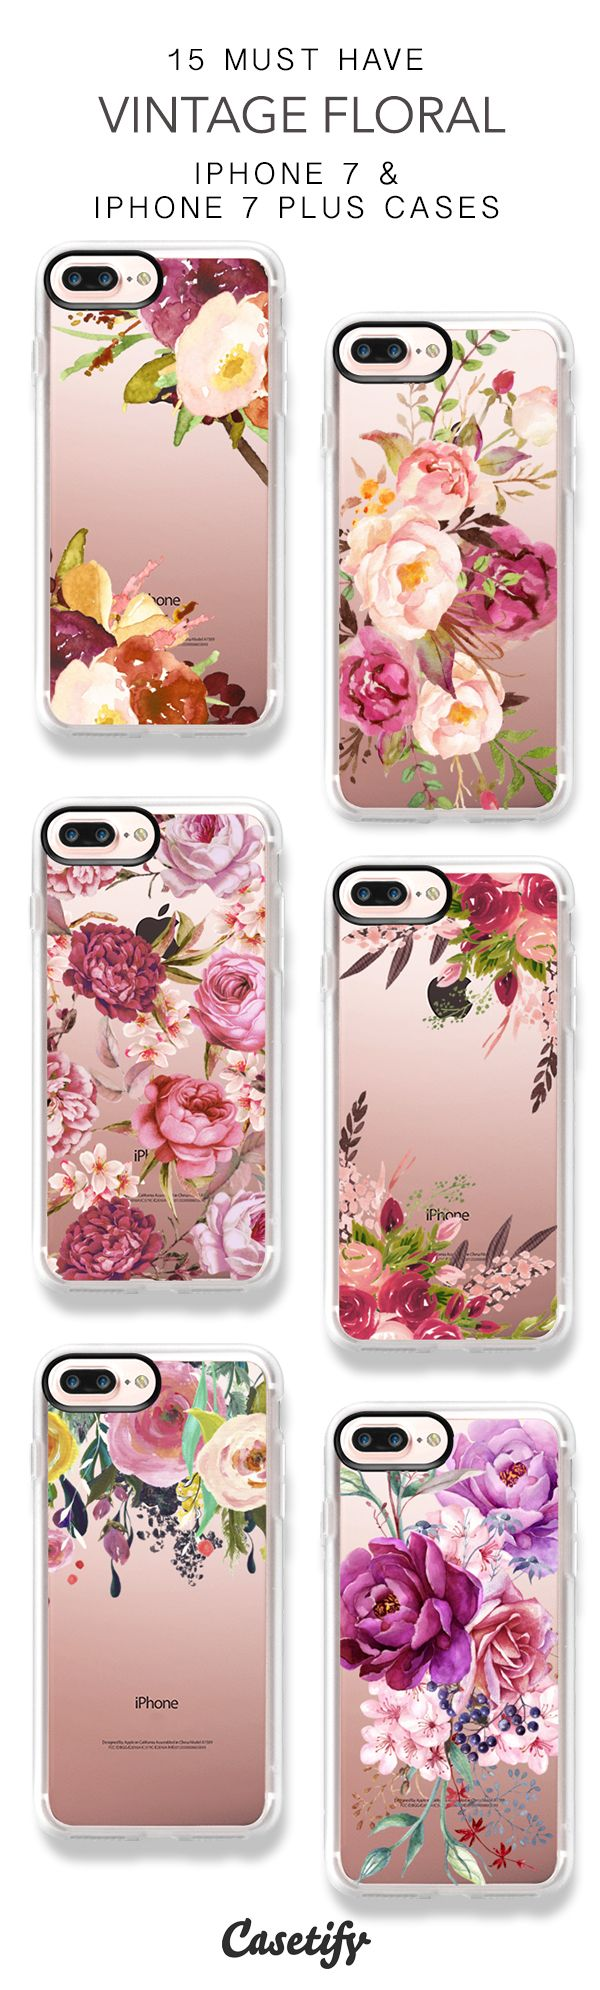 15 Most Popular Vintage Floral iPhone 7 Cases and iPhone 7 Plus Cases. More Floral iPhone case here > https://www.casetify.com/collections/top_100_designs#/?vc=heXba6bIM3